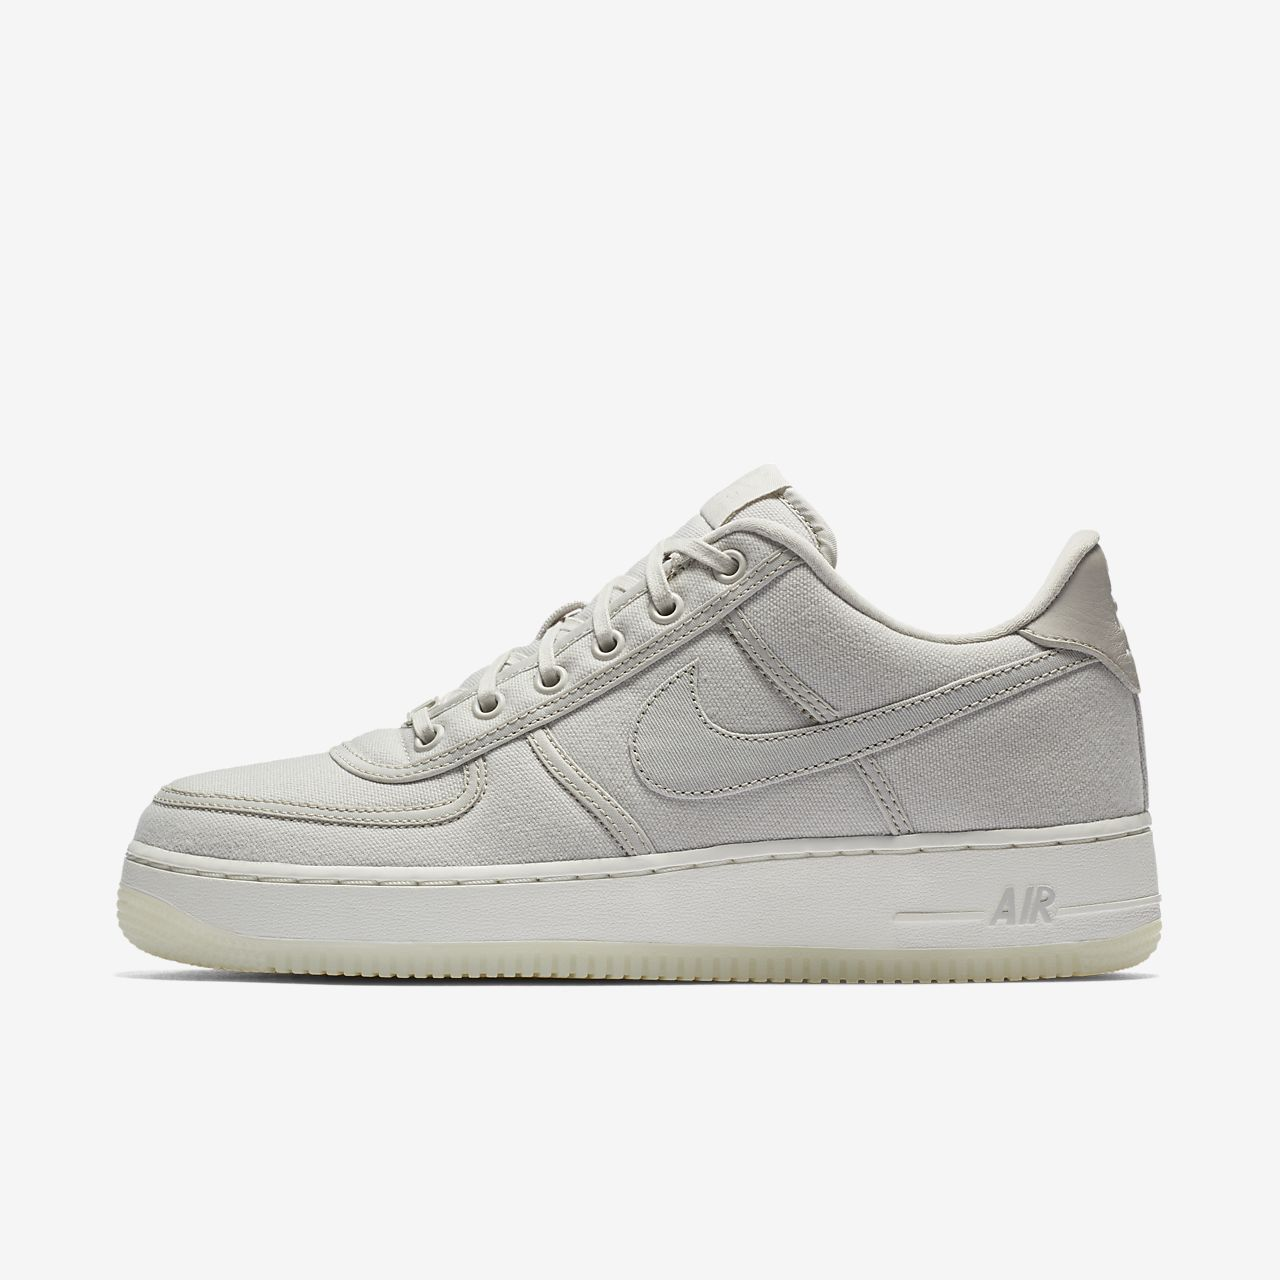 758be3a4ad Nike Air Force 1 Low Retro QS Men's Shoe. Nike.com